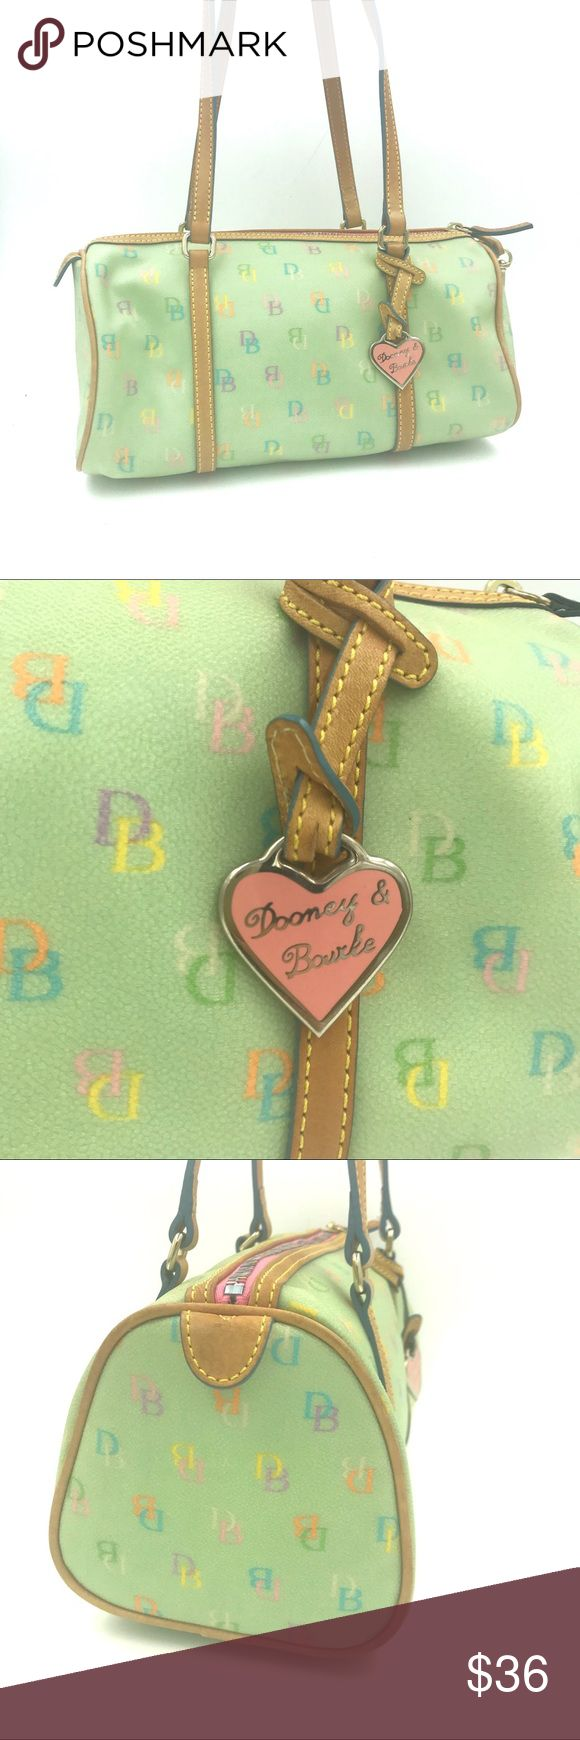 """Dooney & Bourke covered canvas DB multicolor logo Adorable mint green authentic Dooney & Bourke covered canvas DB signature multi-colored logo handbag. Has pink DB heart charm and candy colored top zipper. Interior has 1 large zip pocket, 3 accessory pockets and a key chain. K602340. One side is stained from Storage - see pic. Long double handles with blue piping. 11""""l x 6""""h x 5""""w with 9"""" handle drop. Bags Shoulder Bags"""